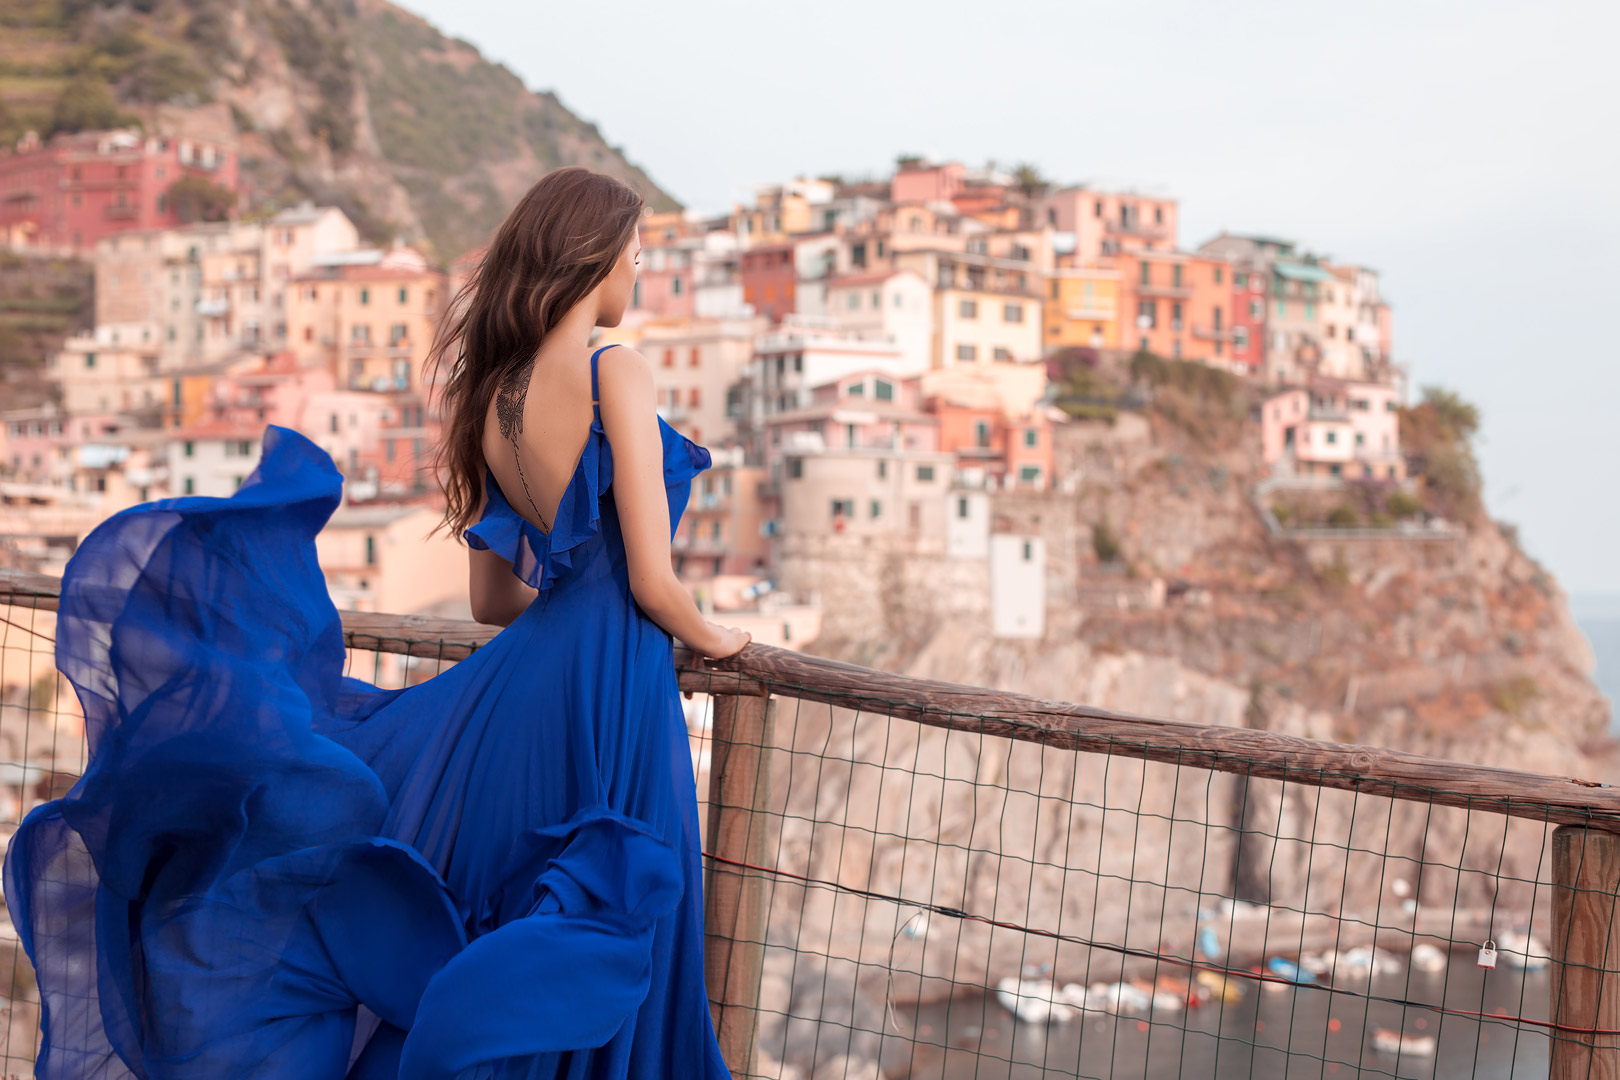 Dream portrait session experience in Italy woman in blue dress Cinque Terre